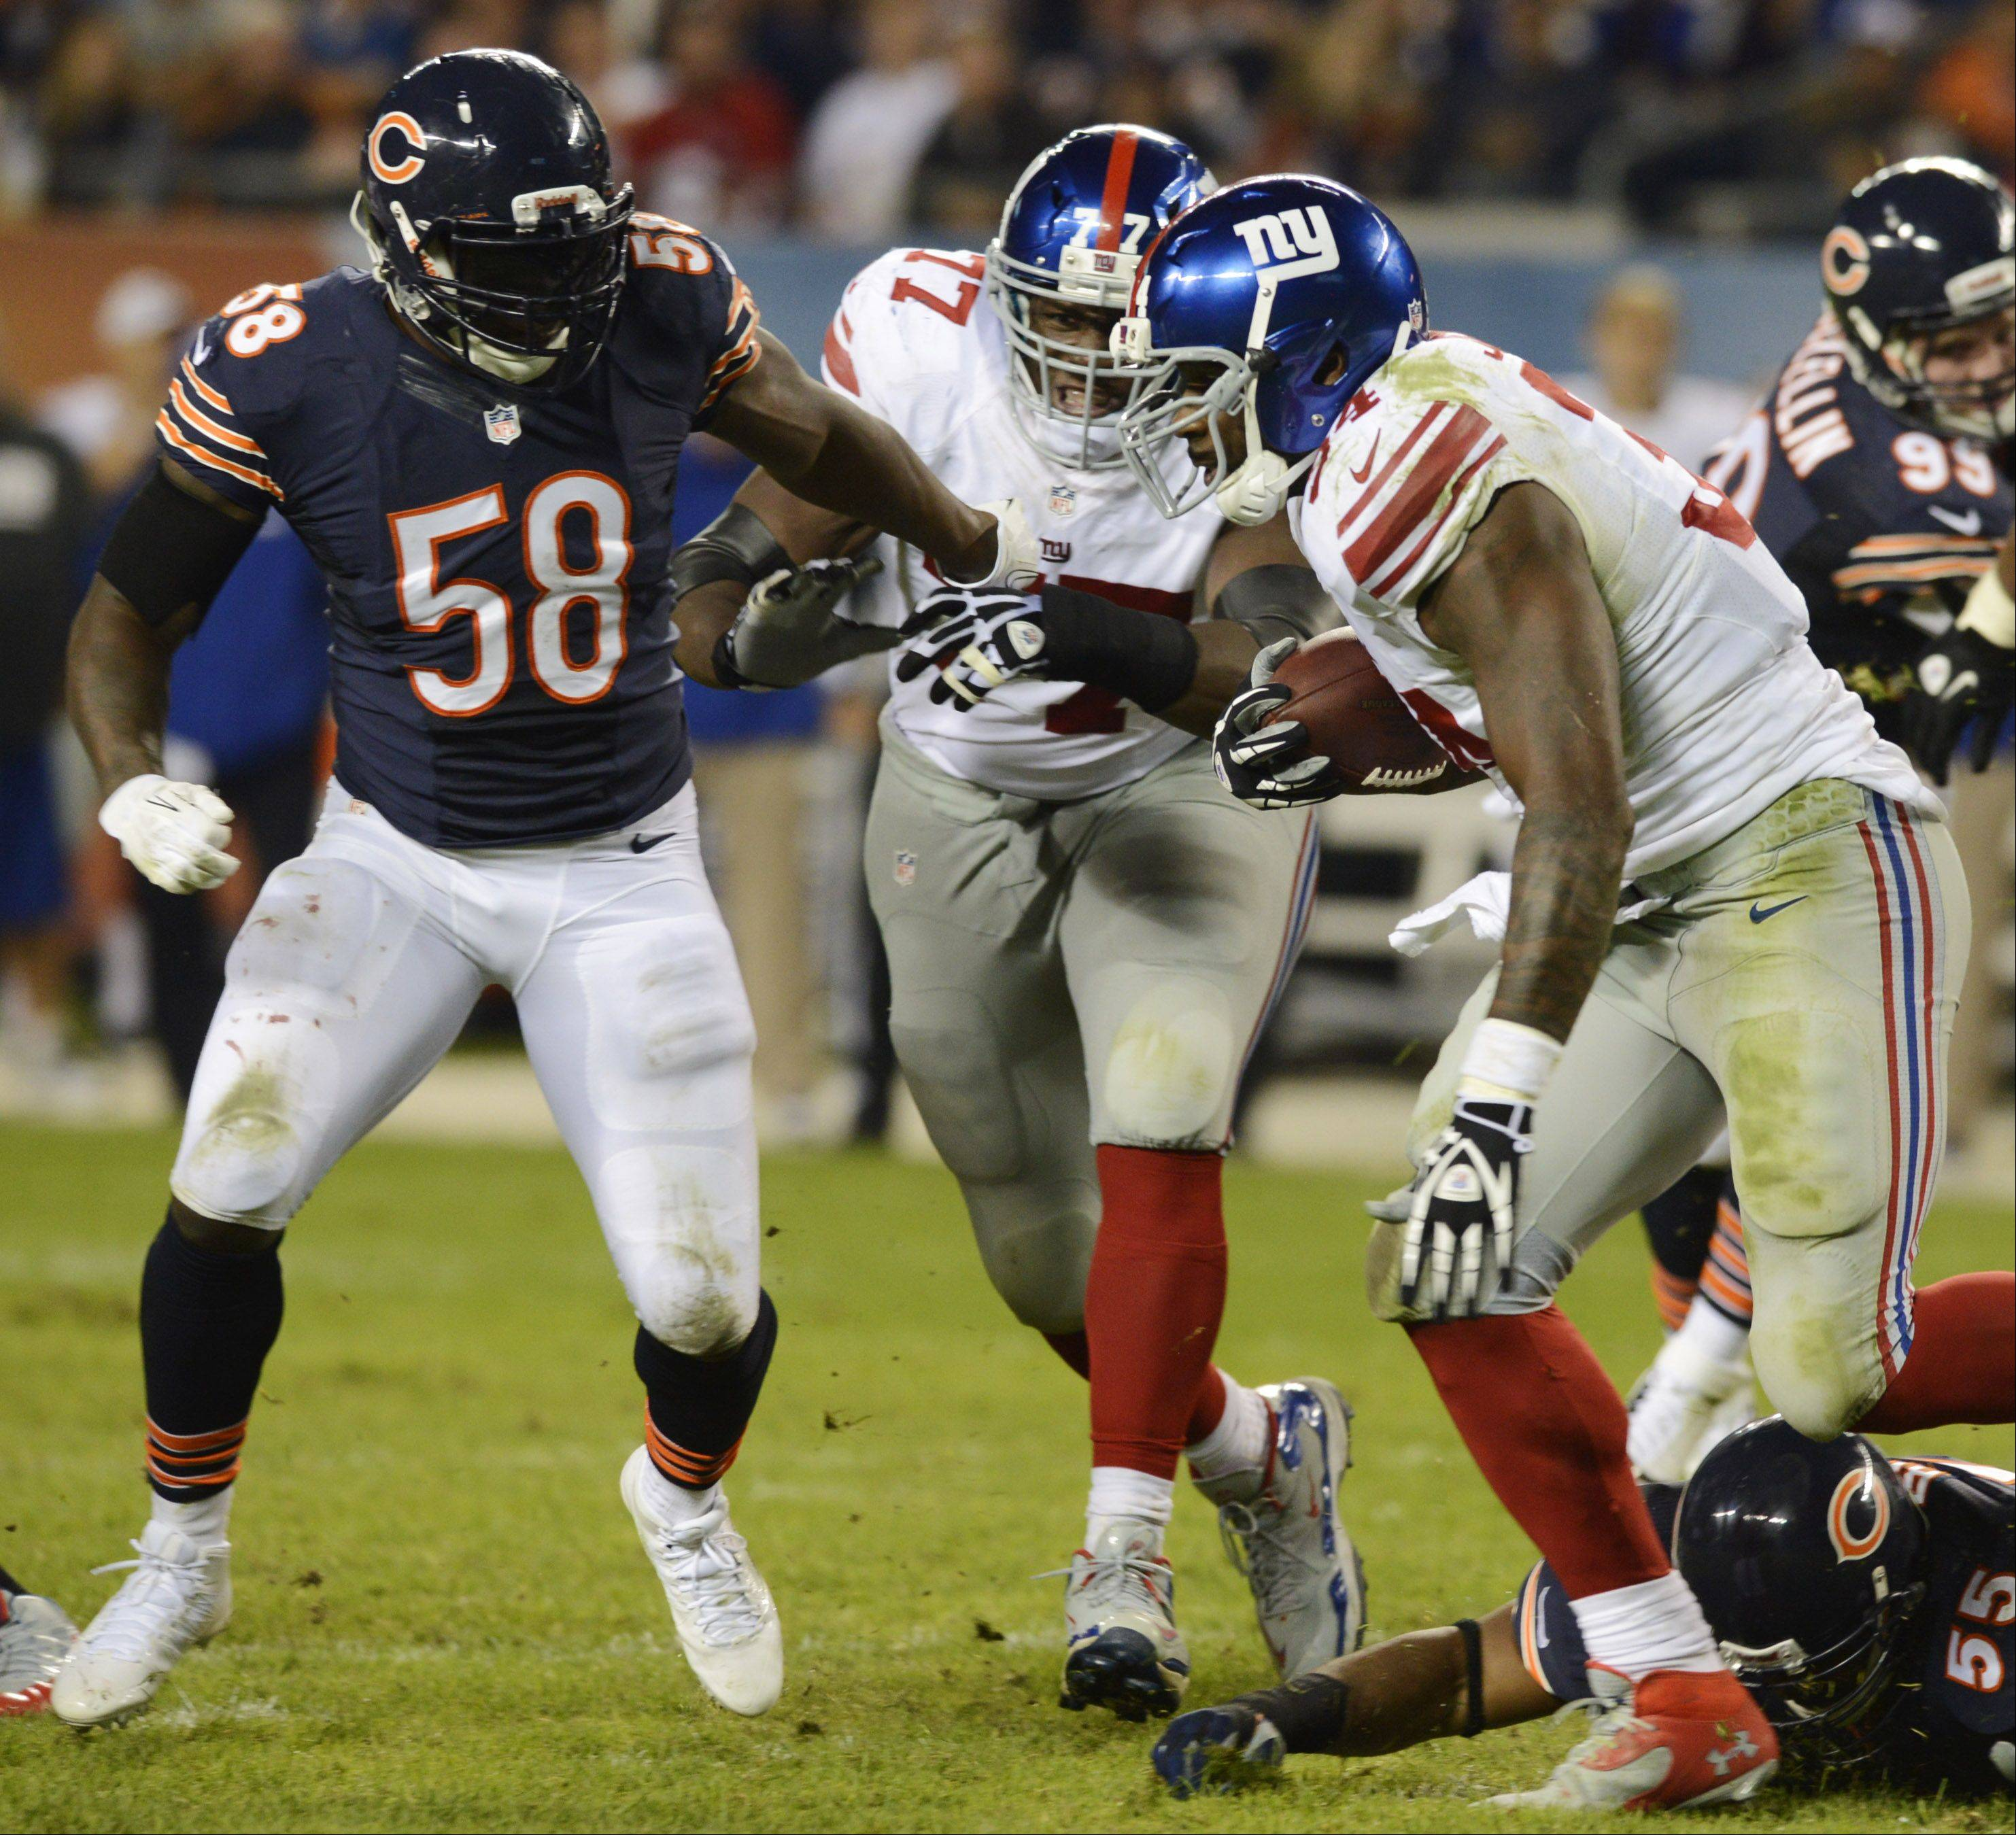 Bears middle linebacker D.J. Williams, here closing in on New York Giants running back Brandon Jacobs, was injured in during Thursday's game at Soldier Field and will be out for the season.